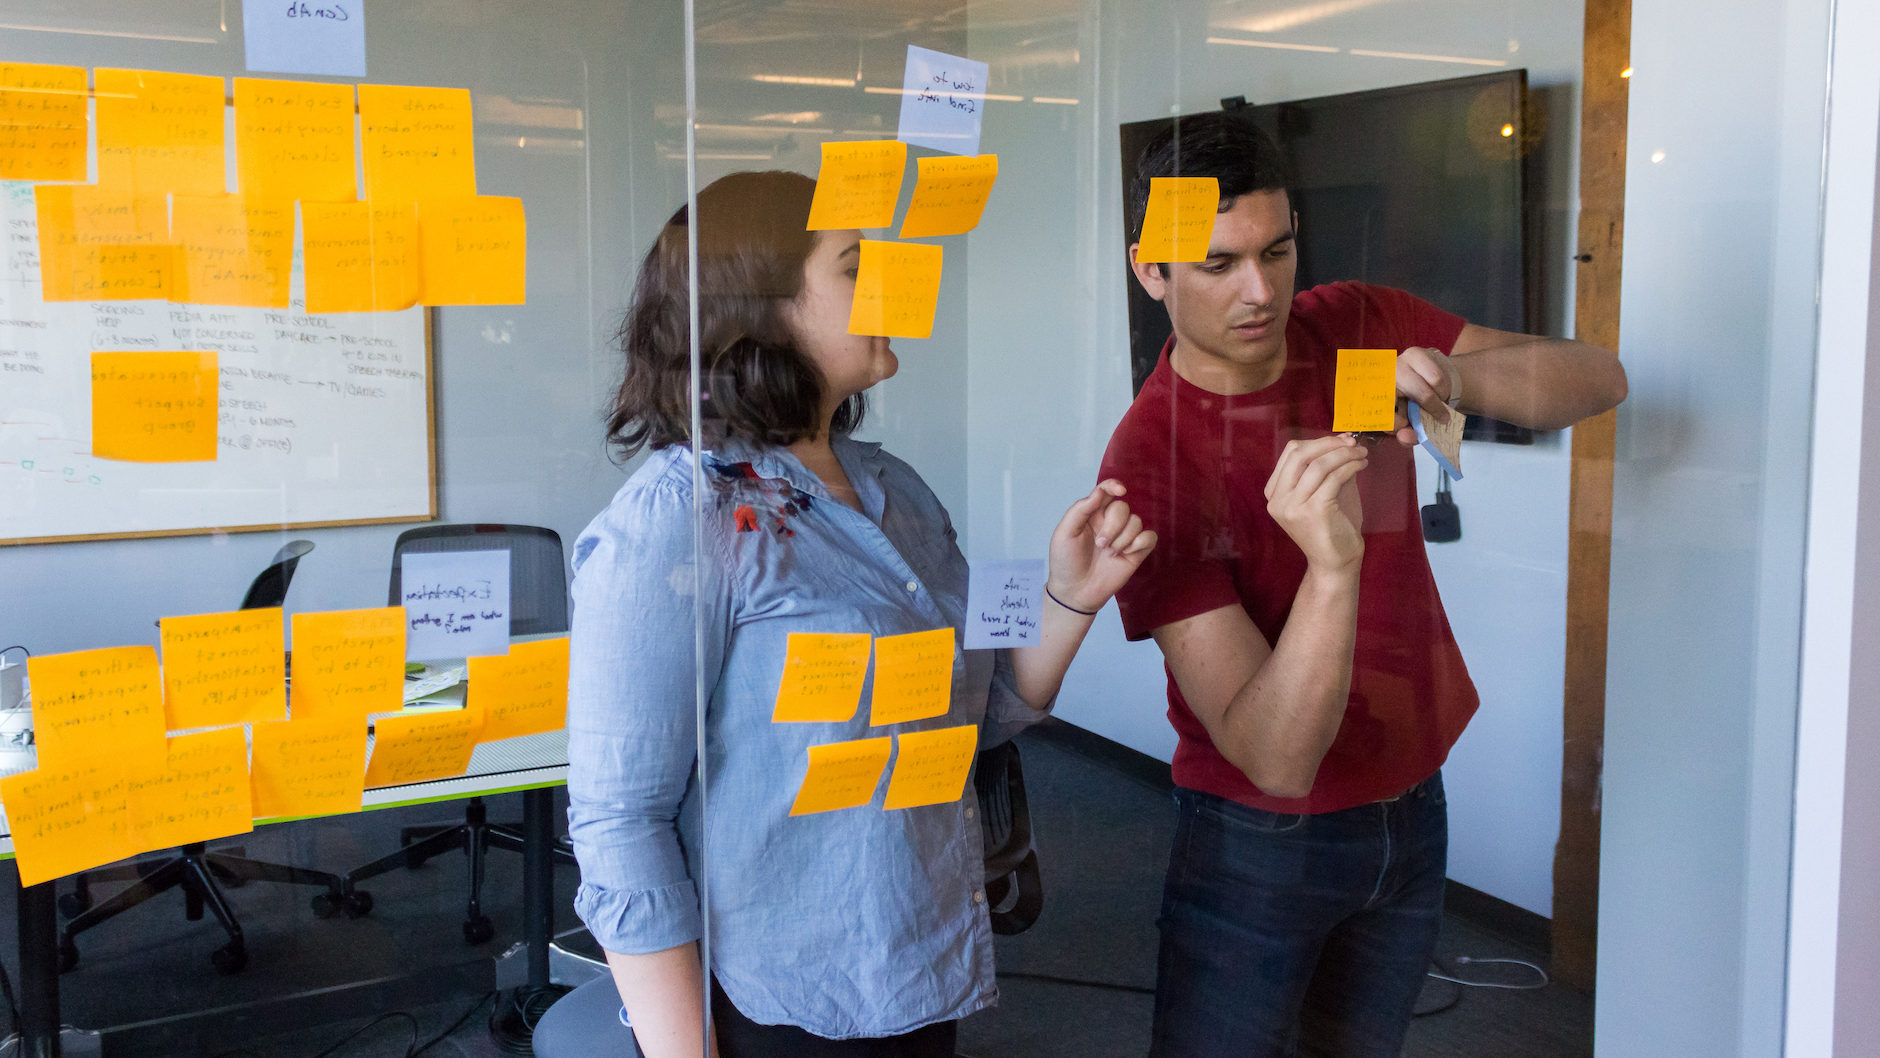 Two Fuzzy Math UX researchers are conducting synthesis of user experience testing research, working at a glass wall with sticky notes on it. One person is talking and gesturing while the other is writing on a sticky note on the glass wall